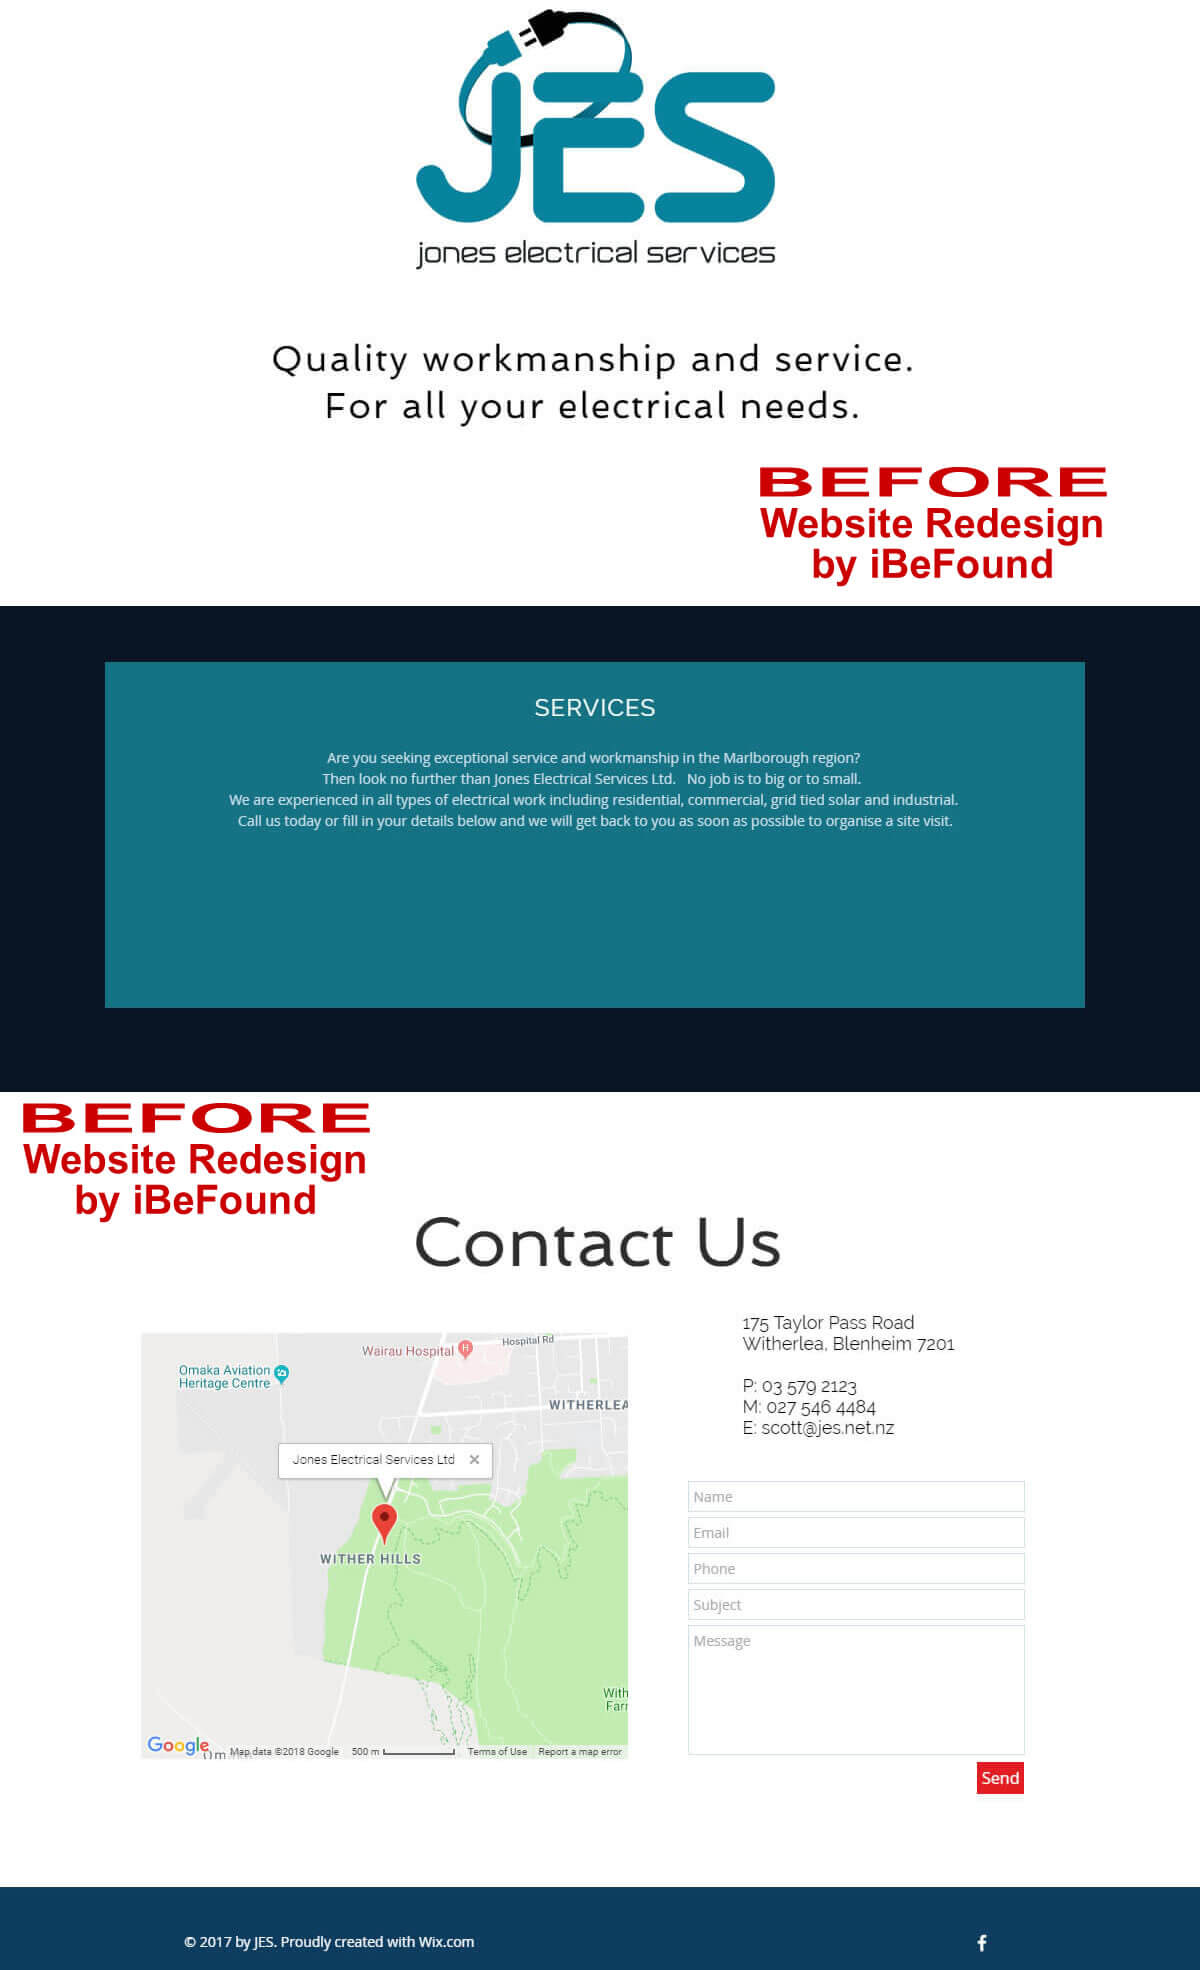 Homepage Of Jones Electrical Services Ltd Before Website Redesign By IBeFound